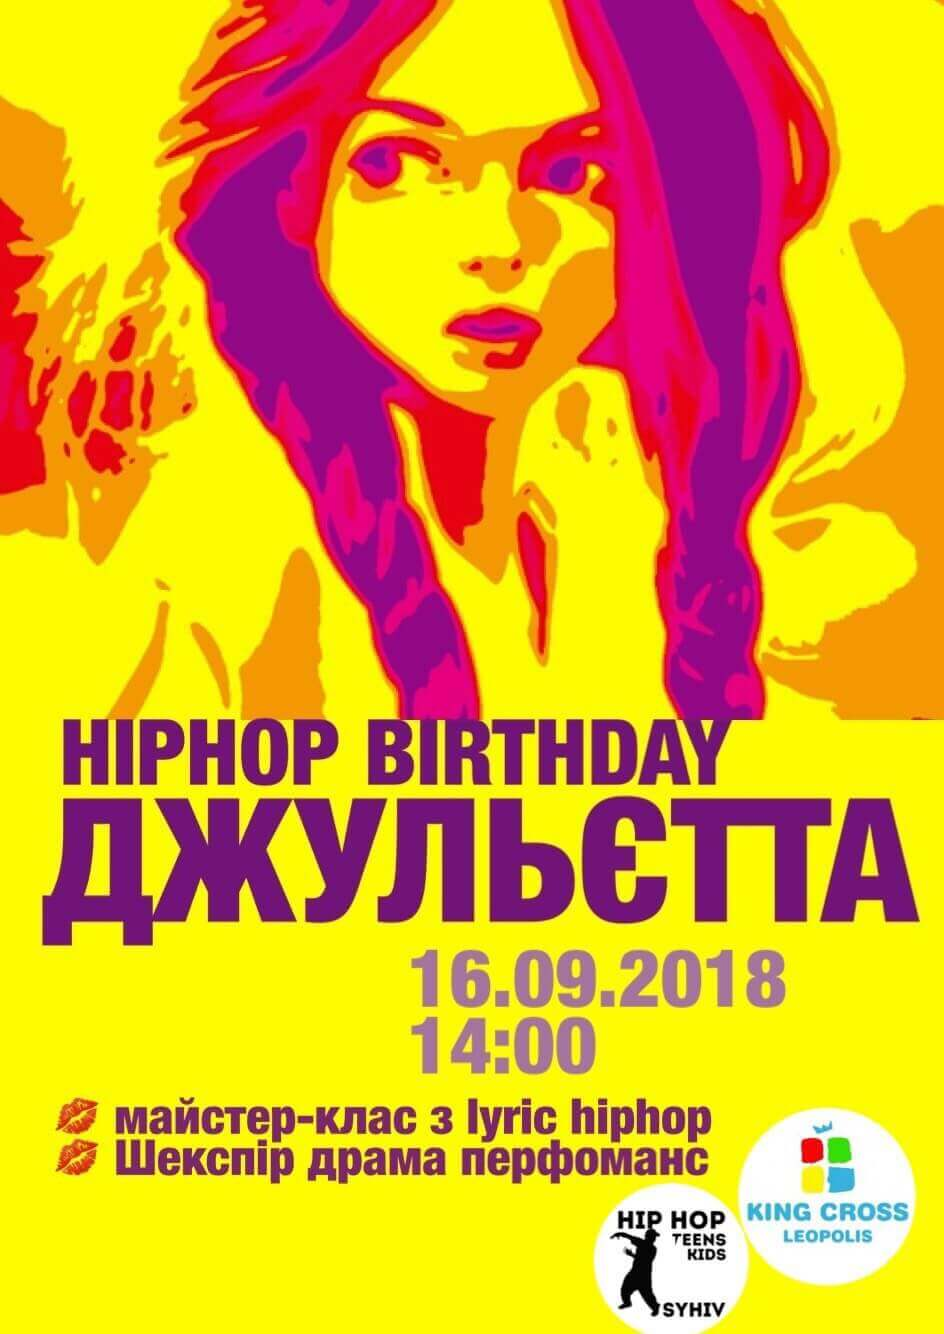 Hiphop Birthday ДЖУЛЬЄТА